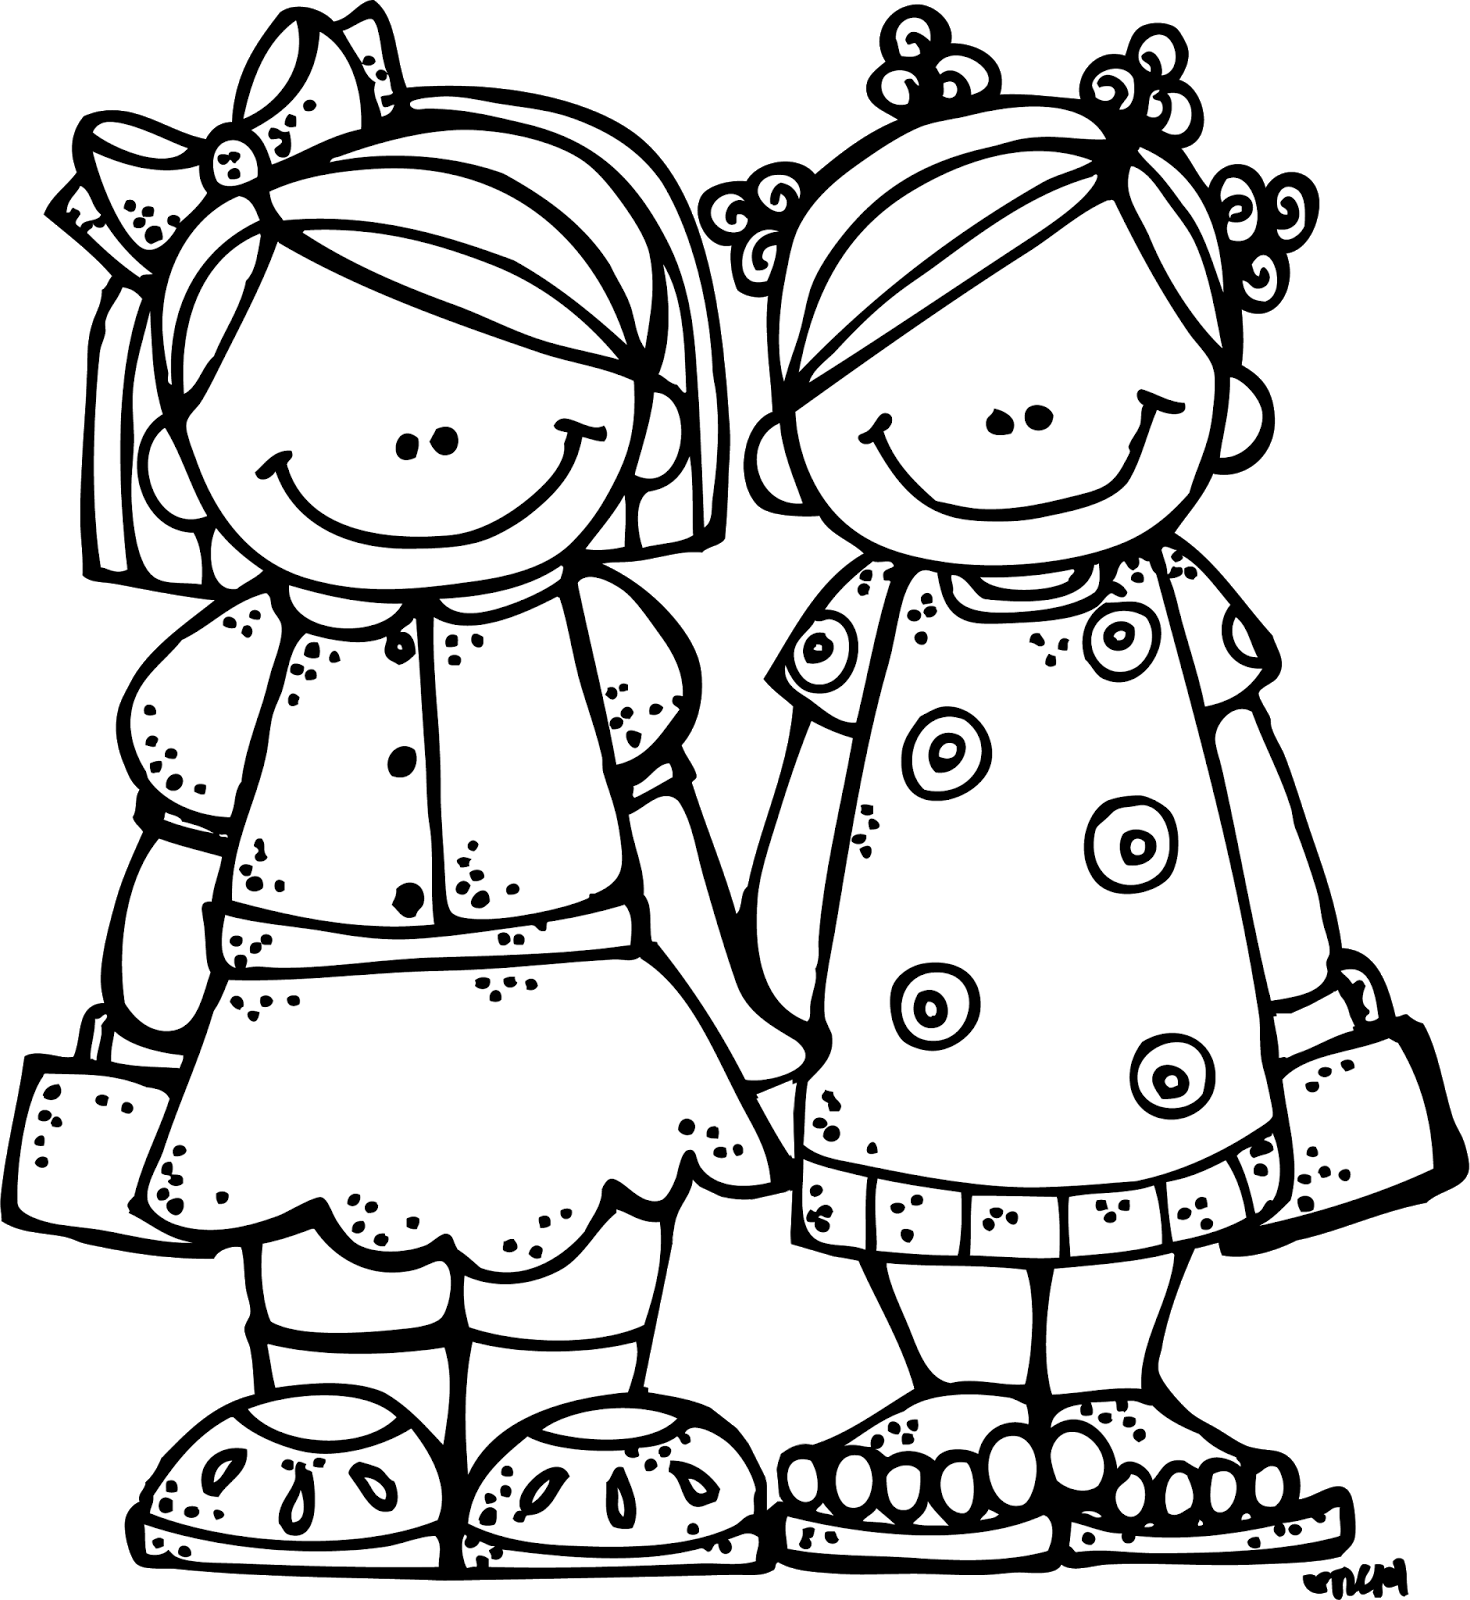 Black white clipart kids heads svg library download Free Melonheadz Kids Black And White, Download Free Clip Art, Free ... svg library download